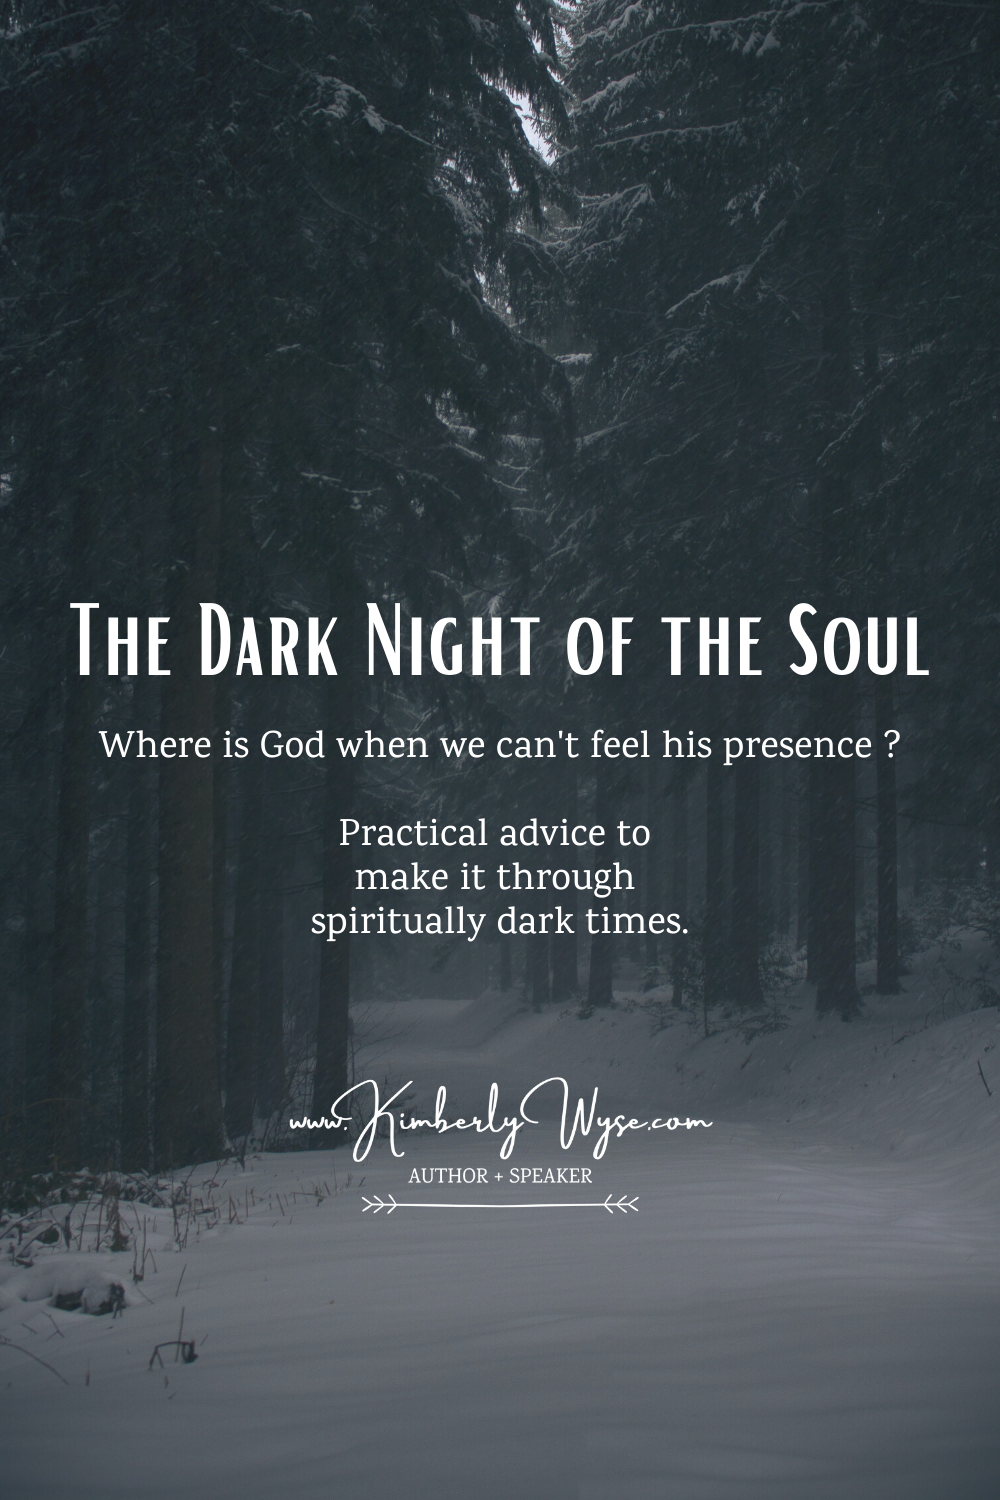 Where is God when we can't feel His presence? Practical advice to make it through spiritually dark times.